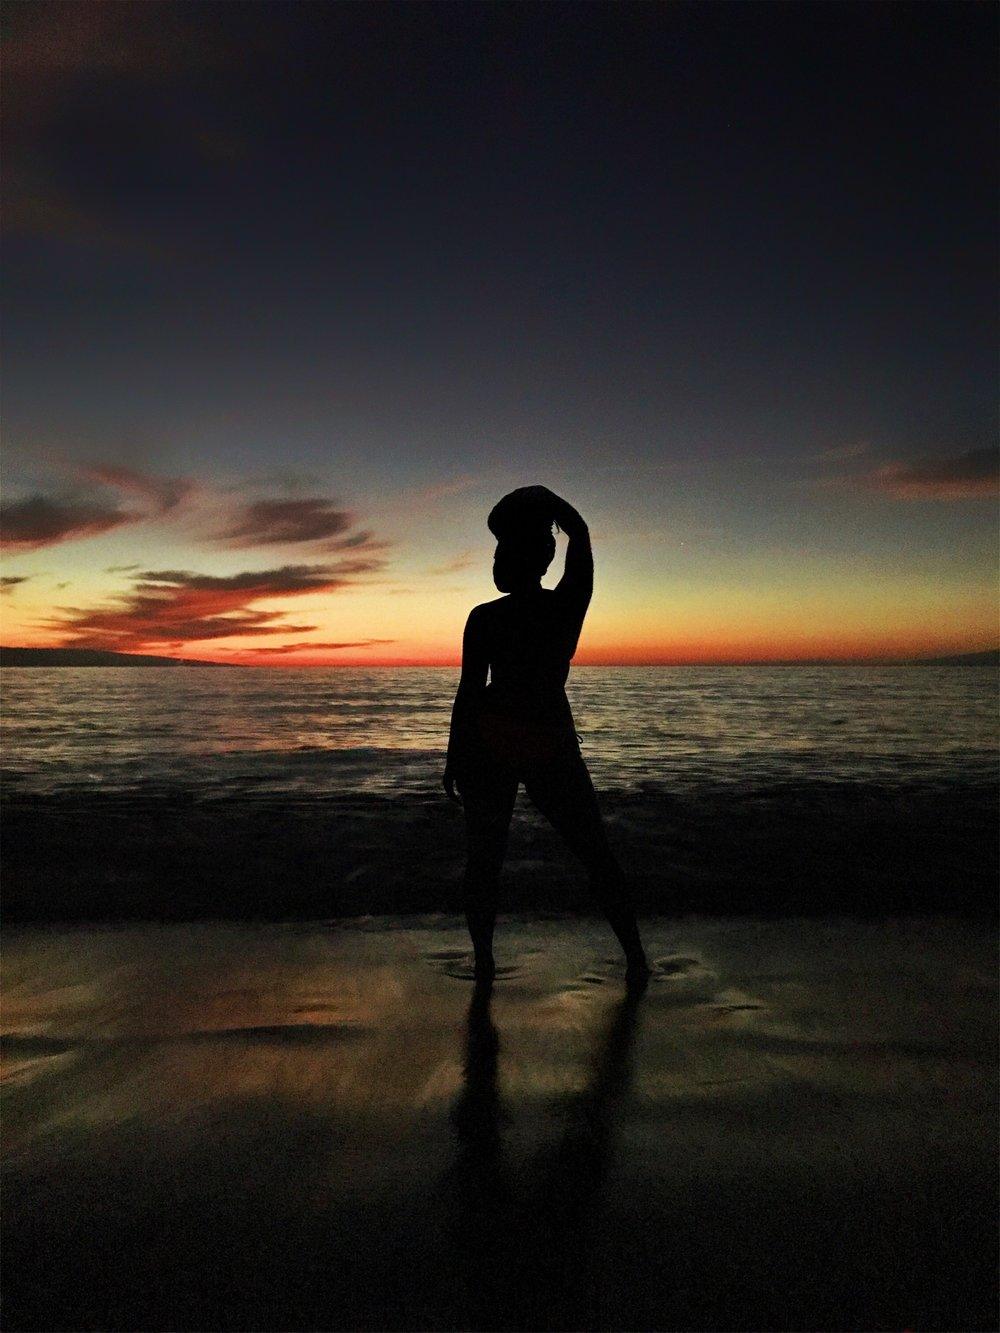 Hawaii-black-woman-silhouette-by-Atlanta-photographer-Chanel-French-16